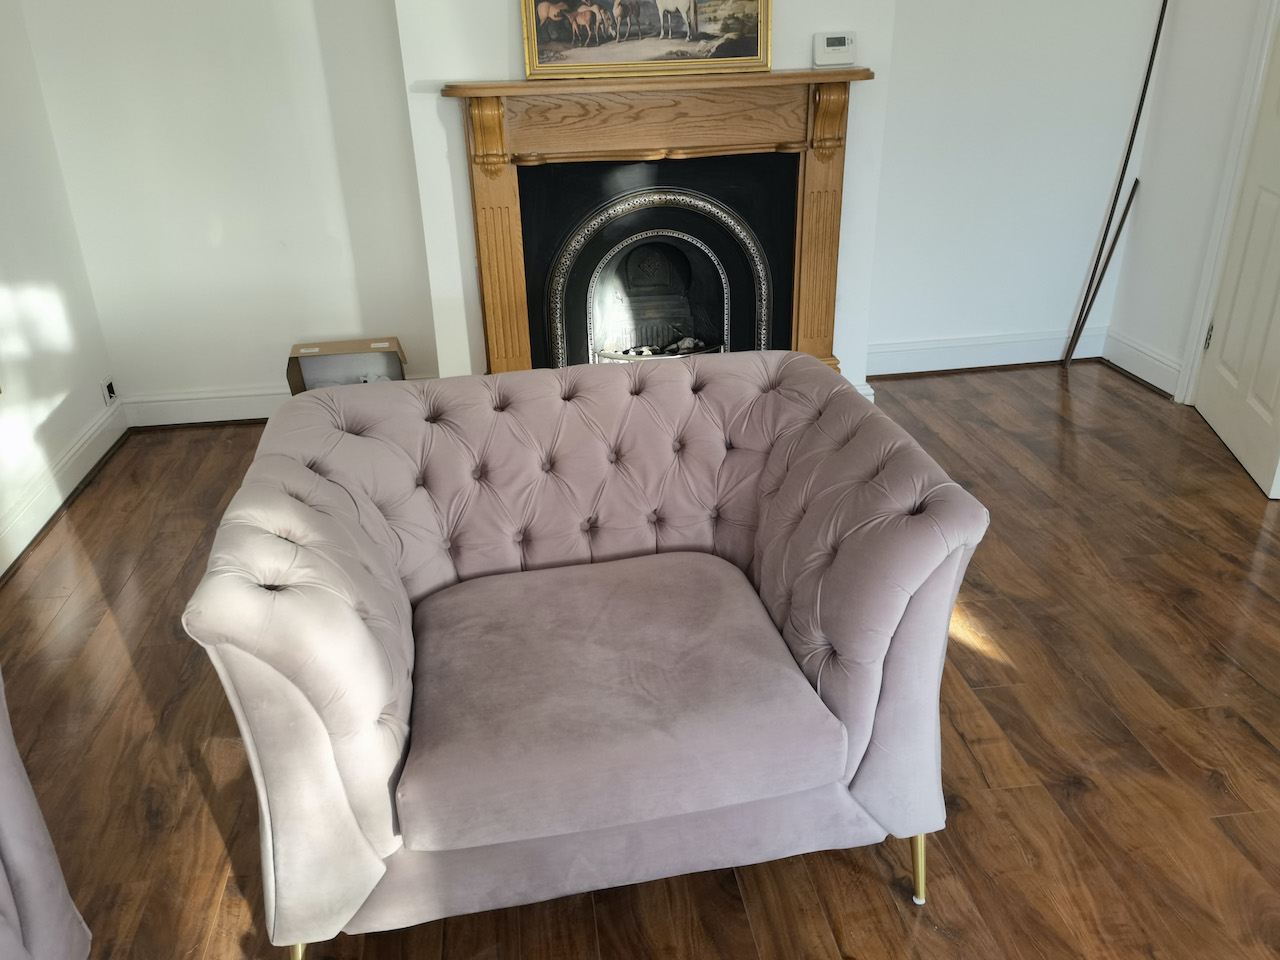 Three-seater sofa and Chesterfield Modern armchair on golden legs